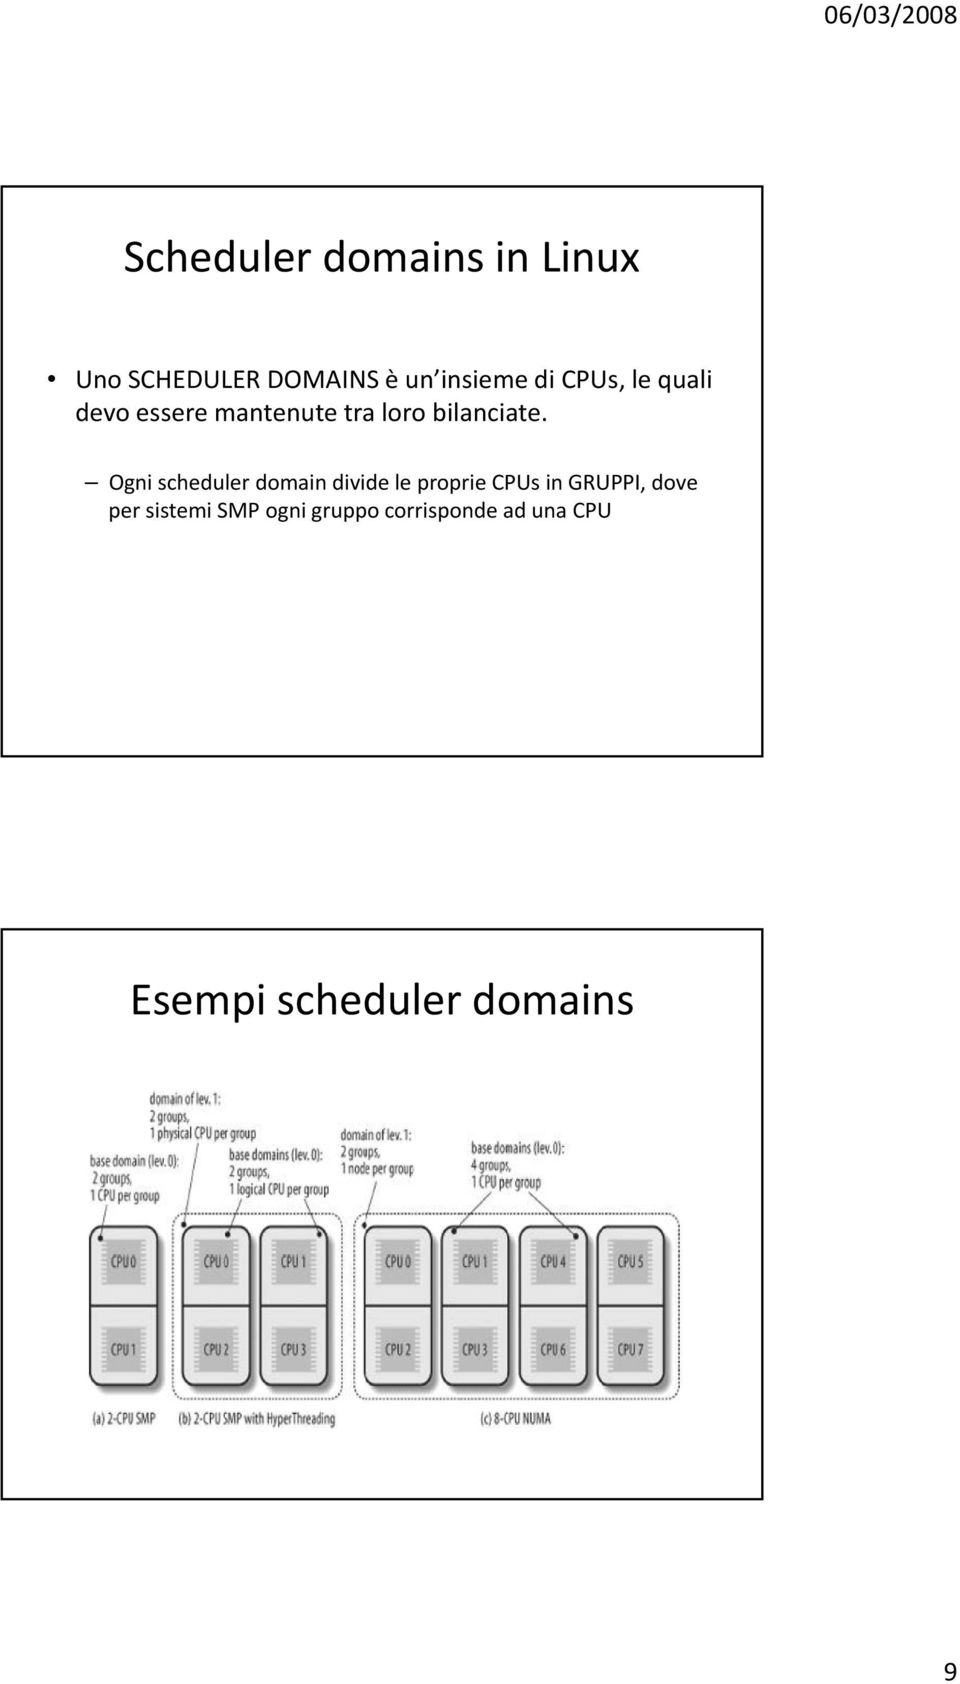 Ogni scheduler domain divide le proprie CPUs in GRUPPI, dove per